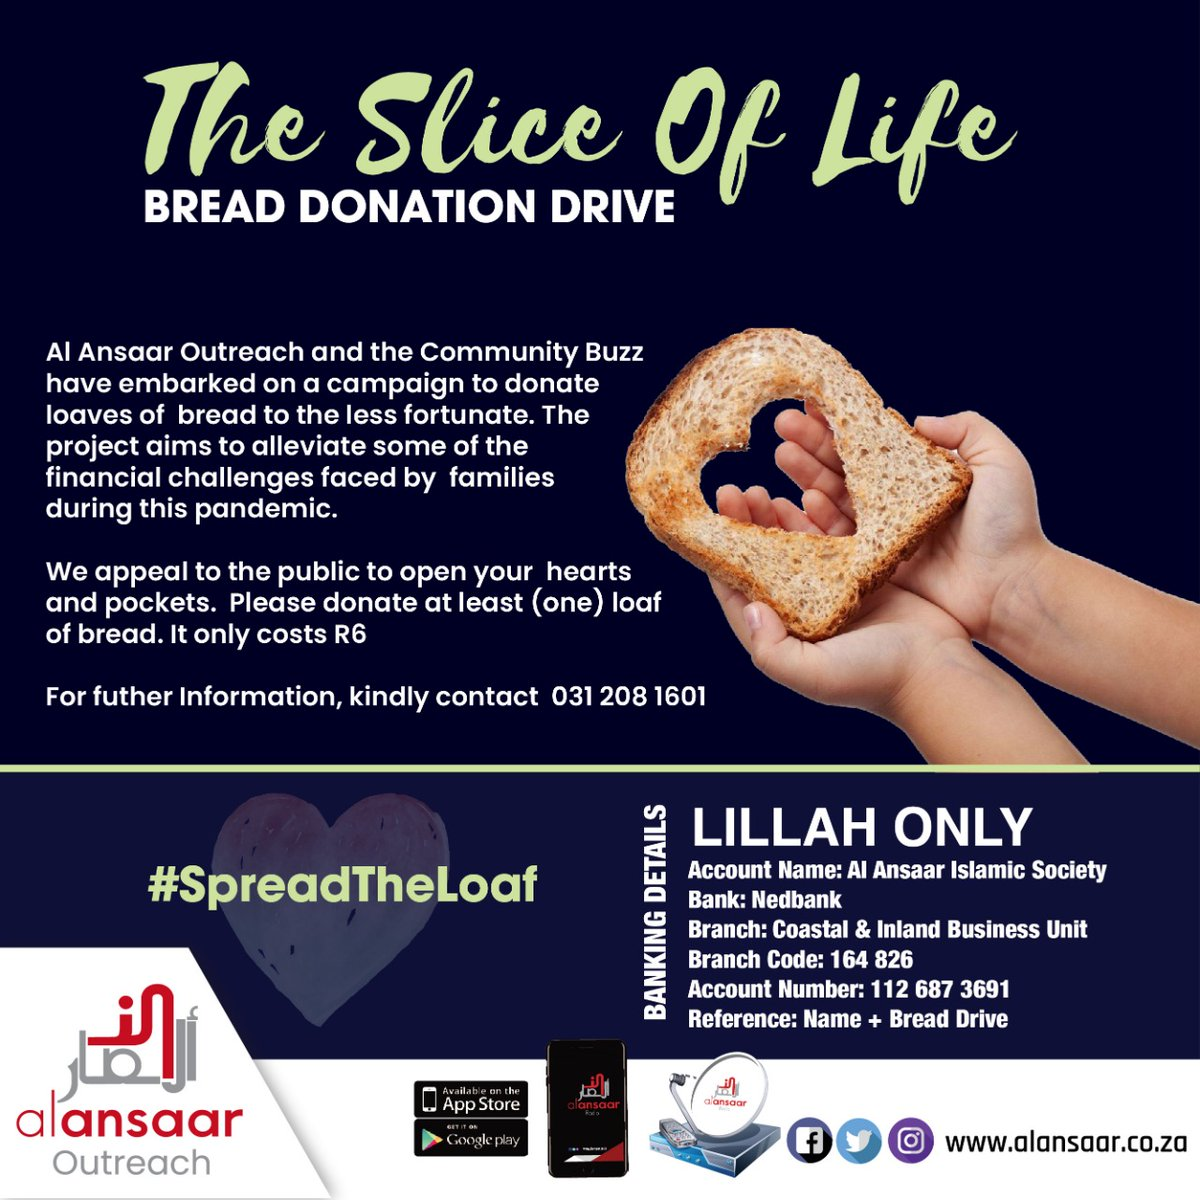 Please open your hearts and pockets in support of this project  #makeadifference #bread #loafofbread #spreadtheloaf #sliceoflife #covid19 #coronavirus #coronavirusoutbreak #charity #Islam #food #hygiene #essentials #people #ummah #beloved #ngo #donate #alansaarfoundation